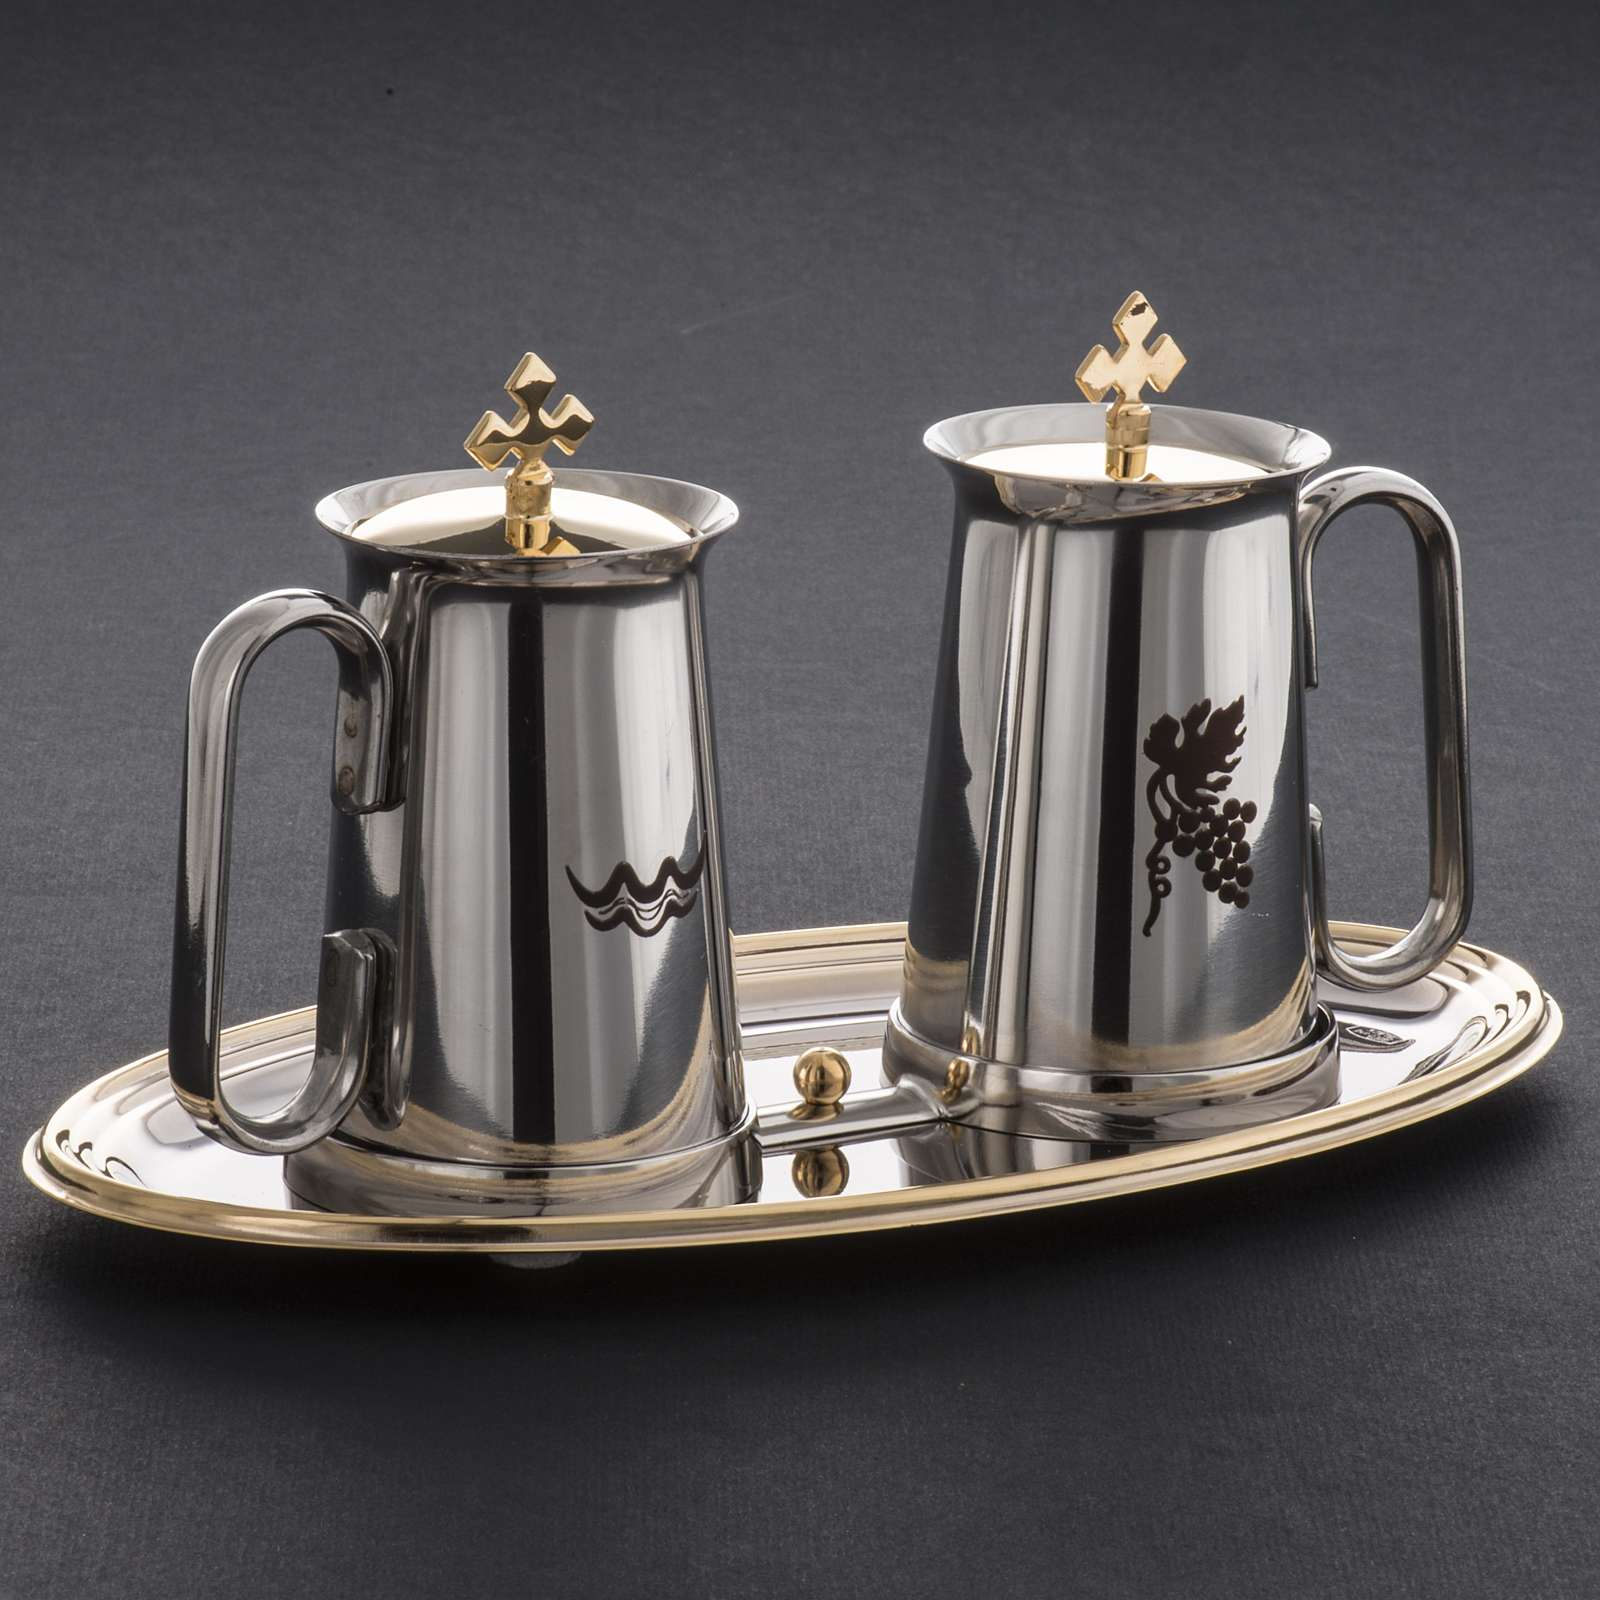 Stainless steel cruet set, water and grapes symbols 4